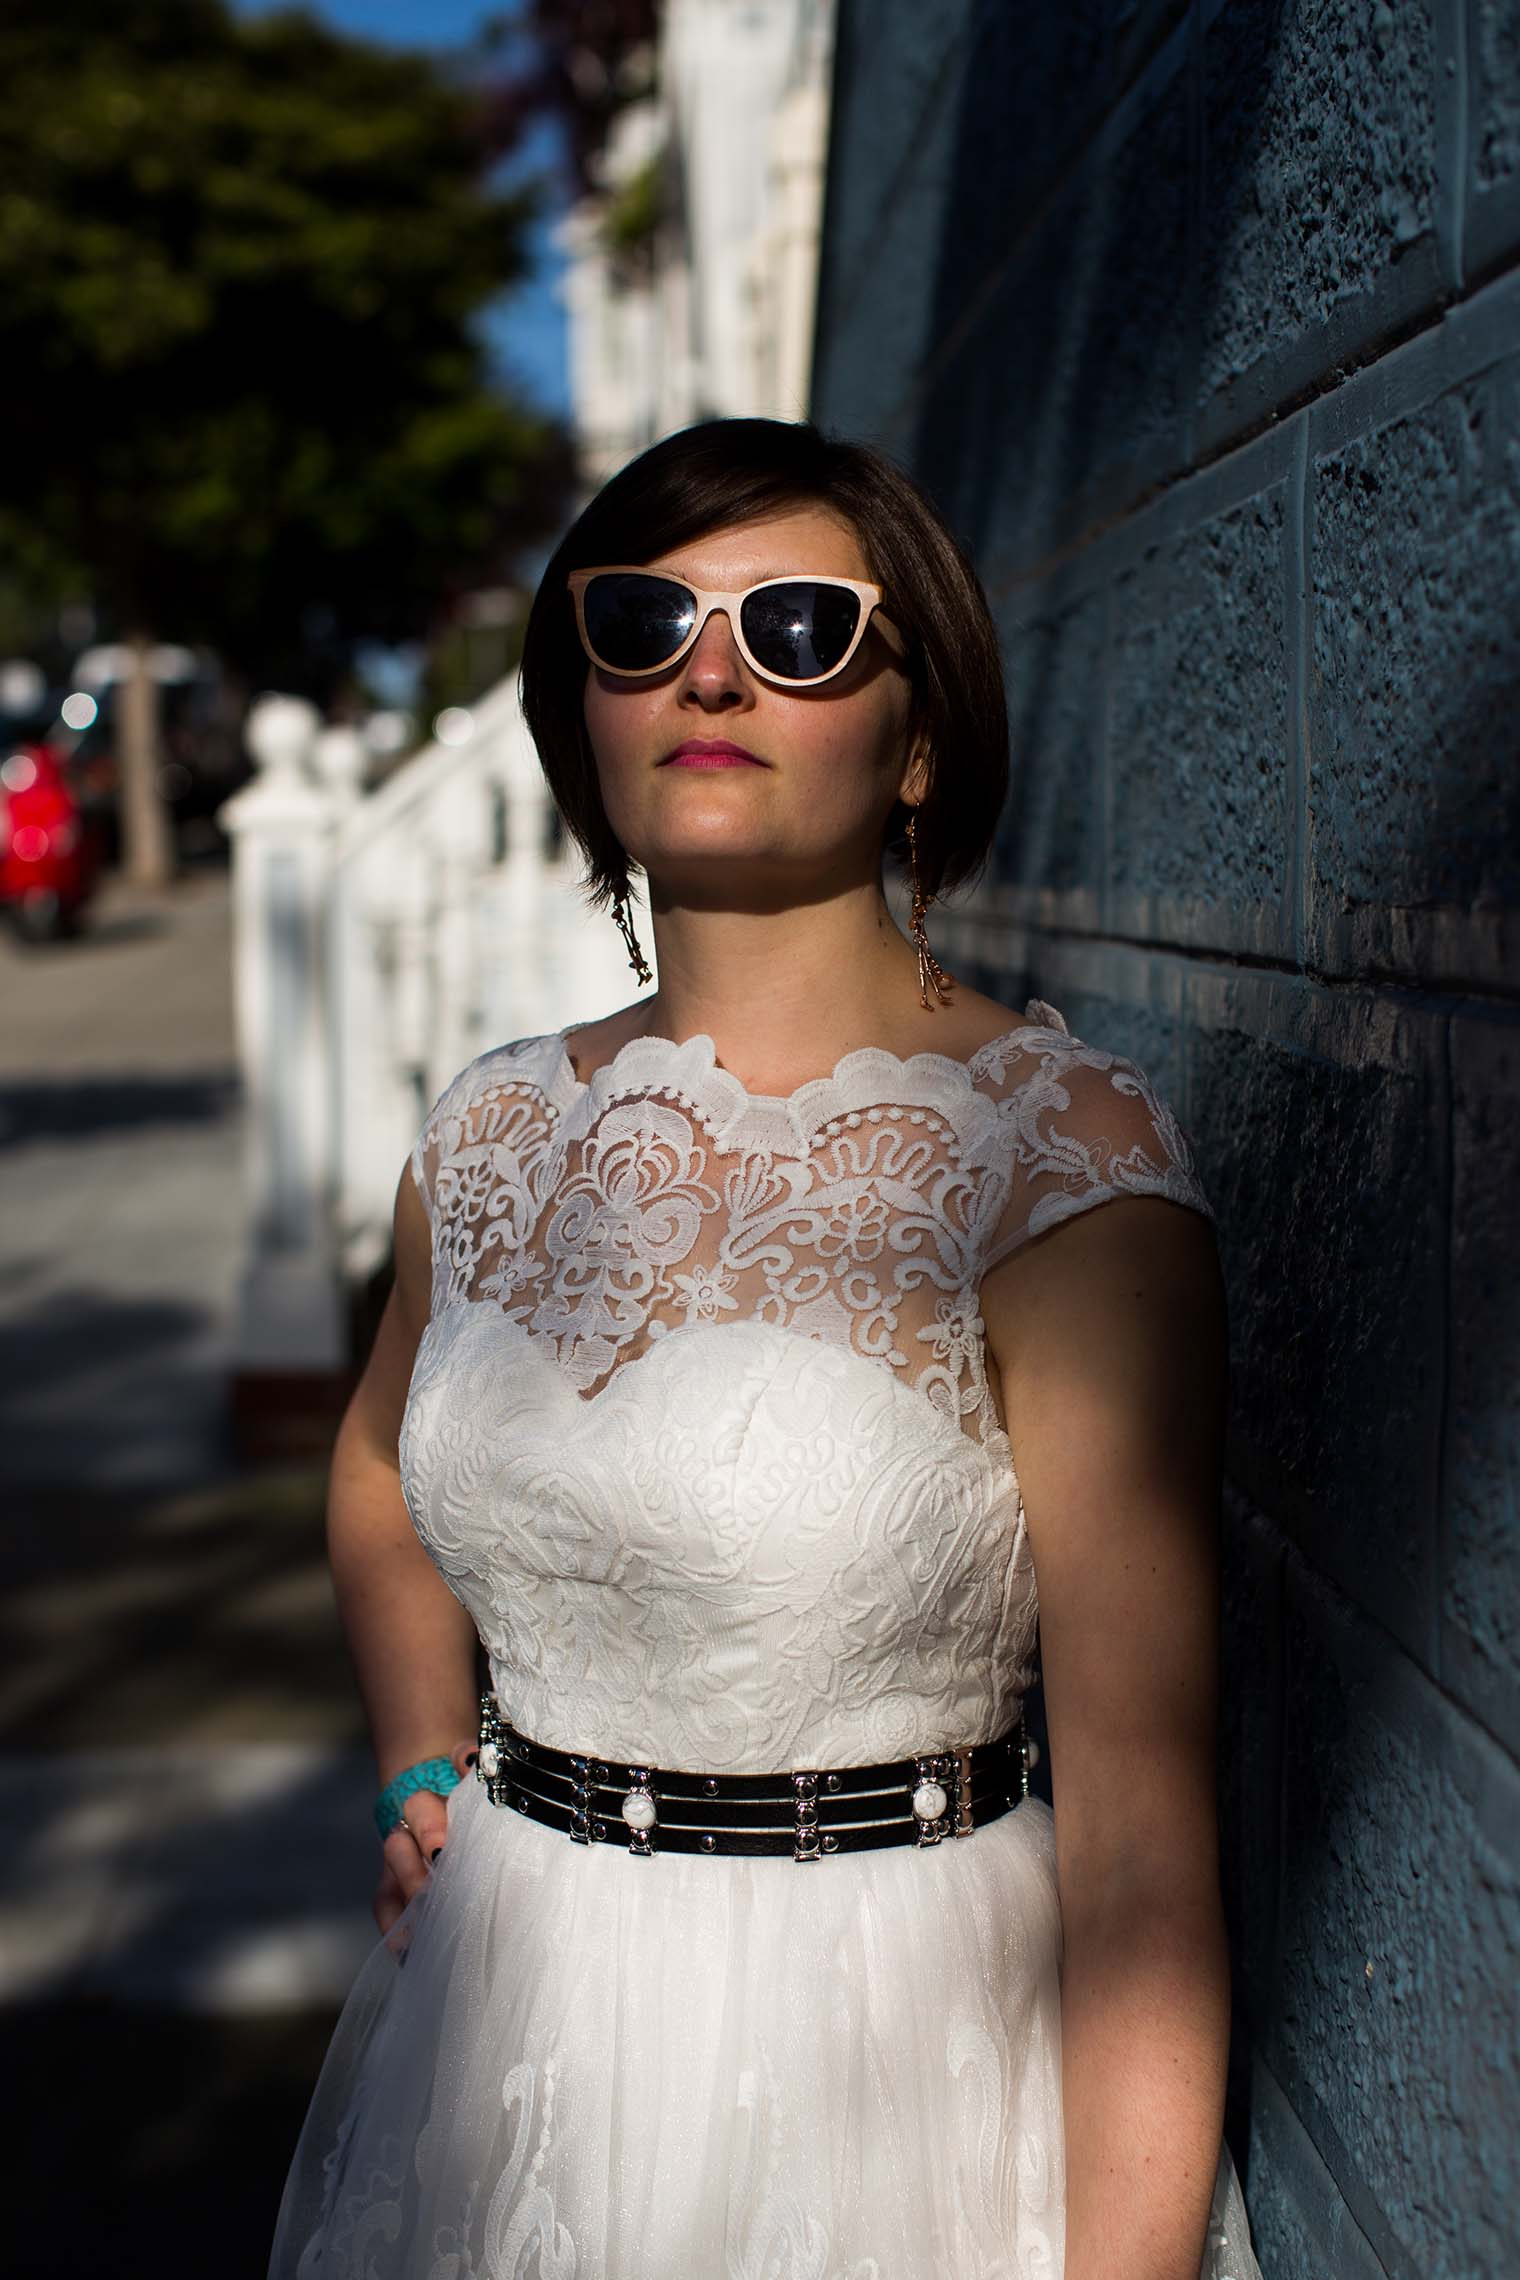 Bride portrait in San Francisco